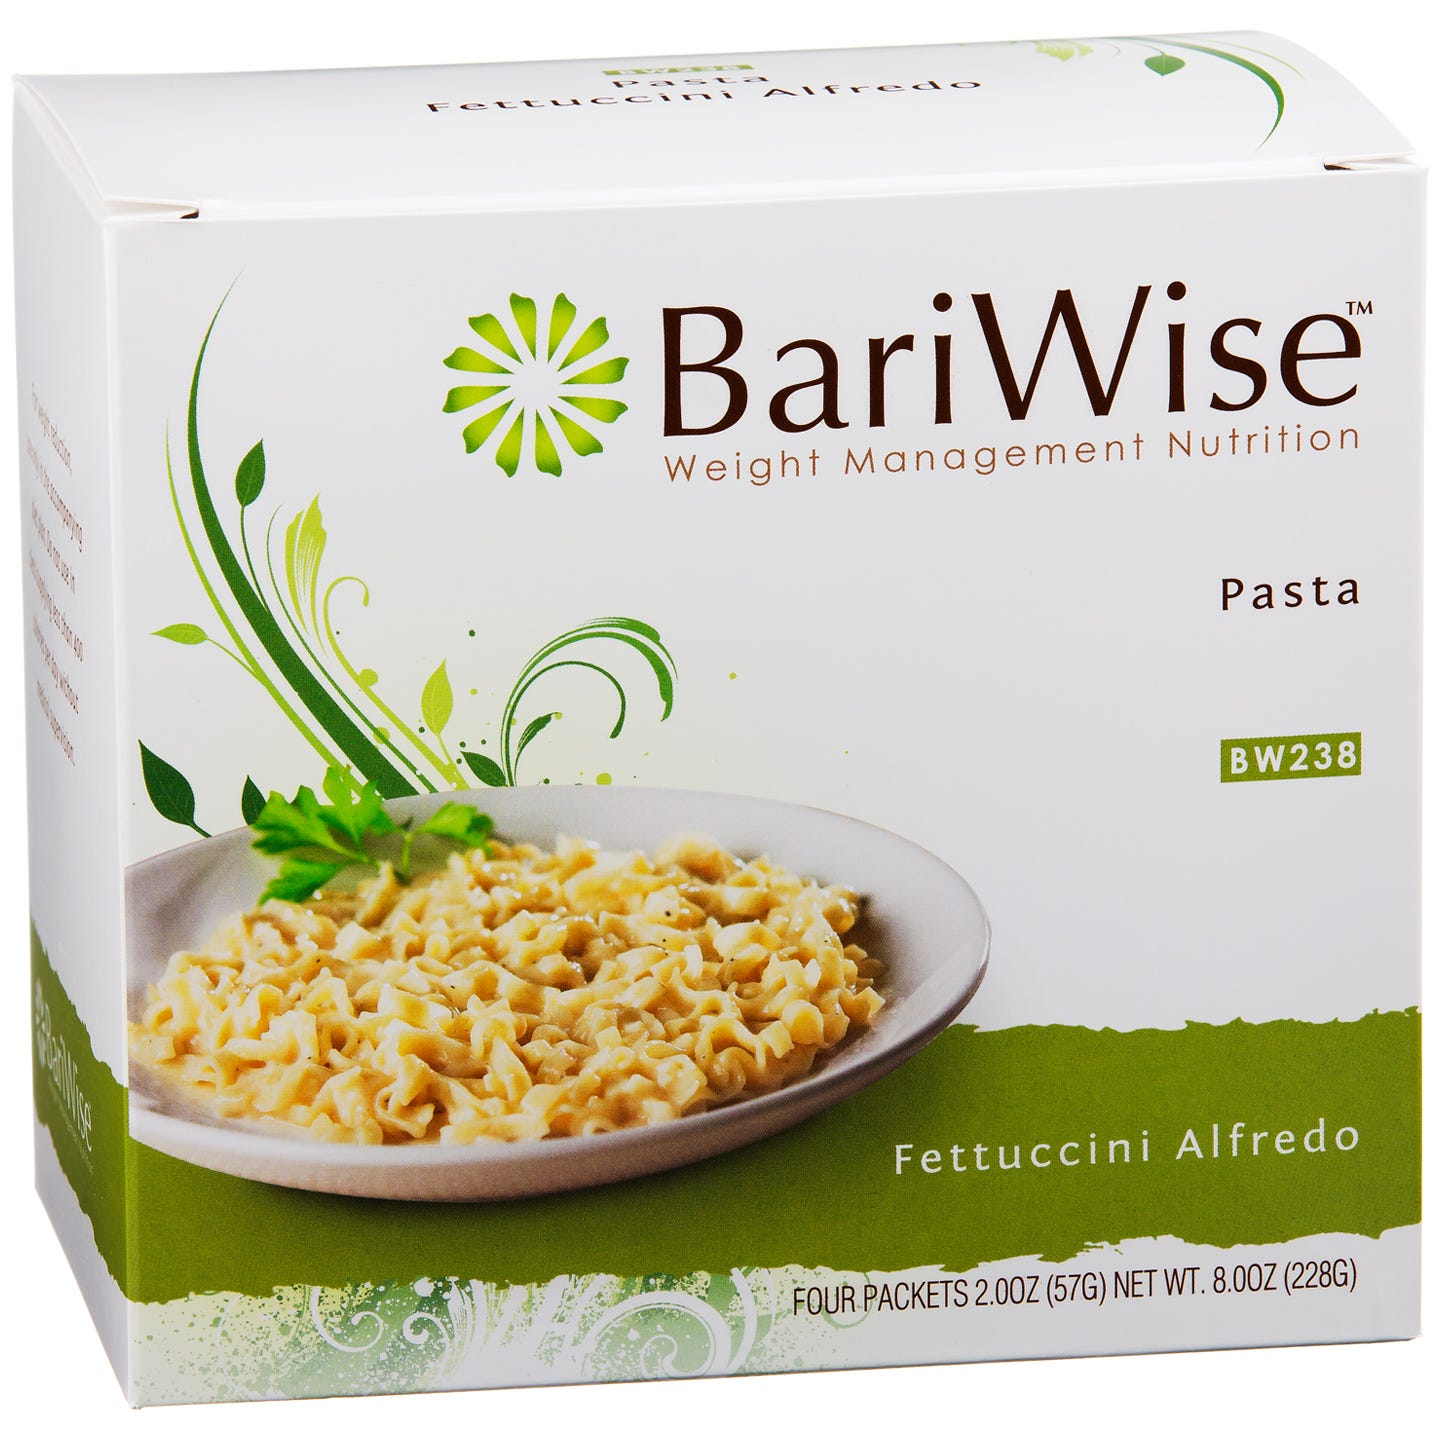 Fettuccini Alfredo Pasta (4 ct) - BariWise - Rapid Diet Weight Loss Products Shop